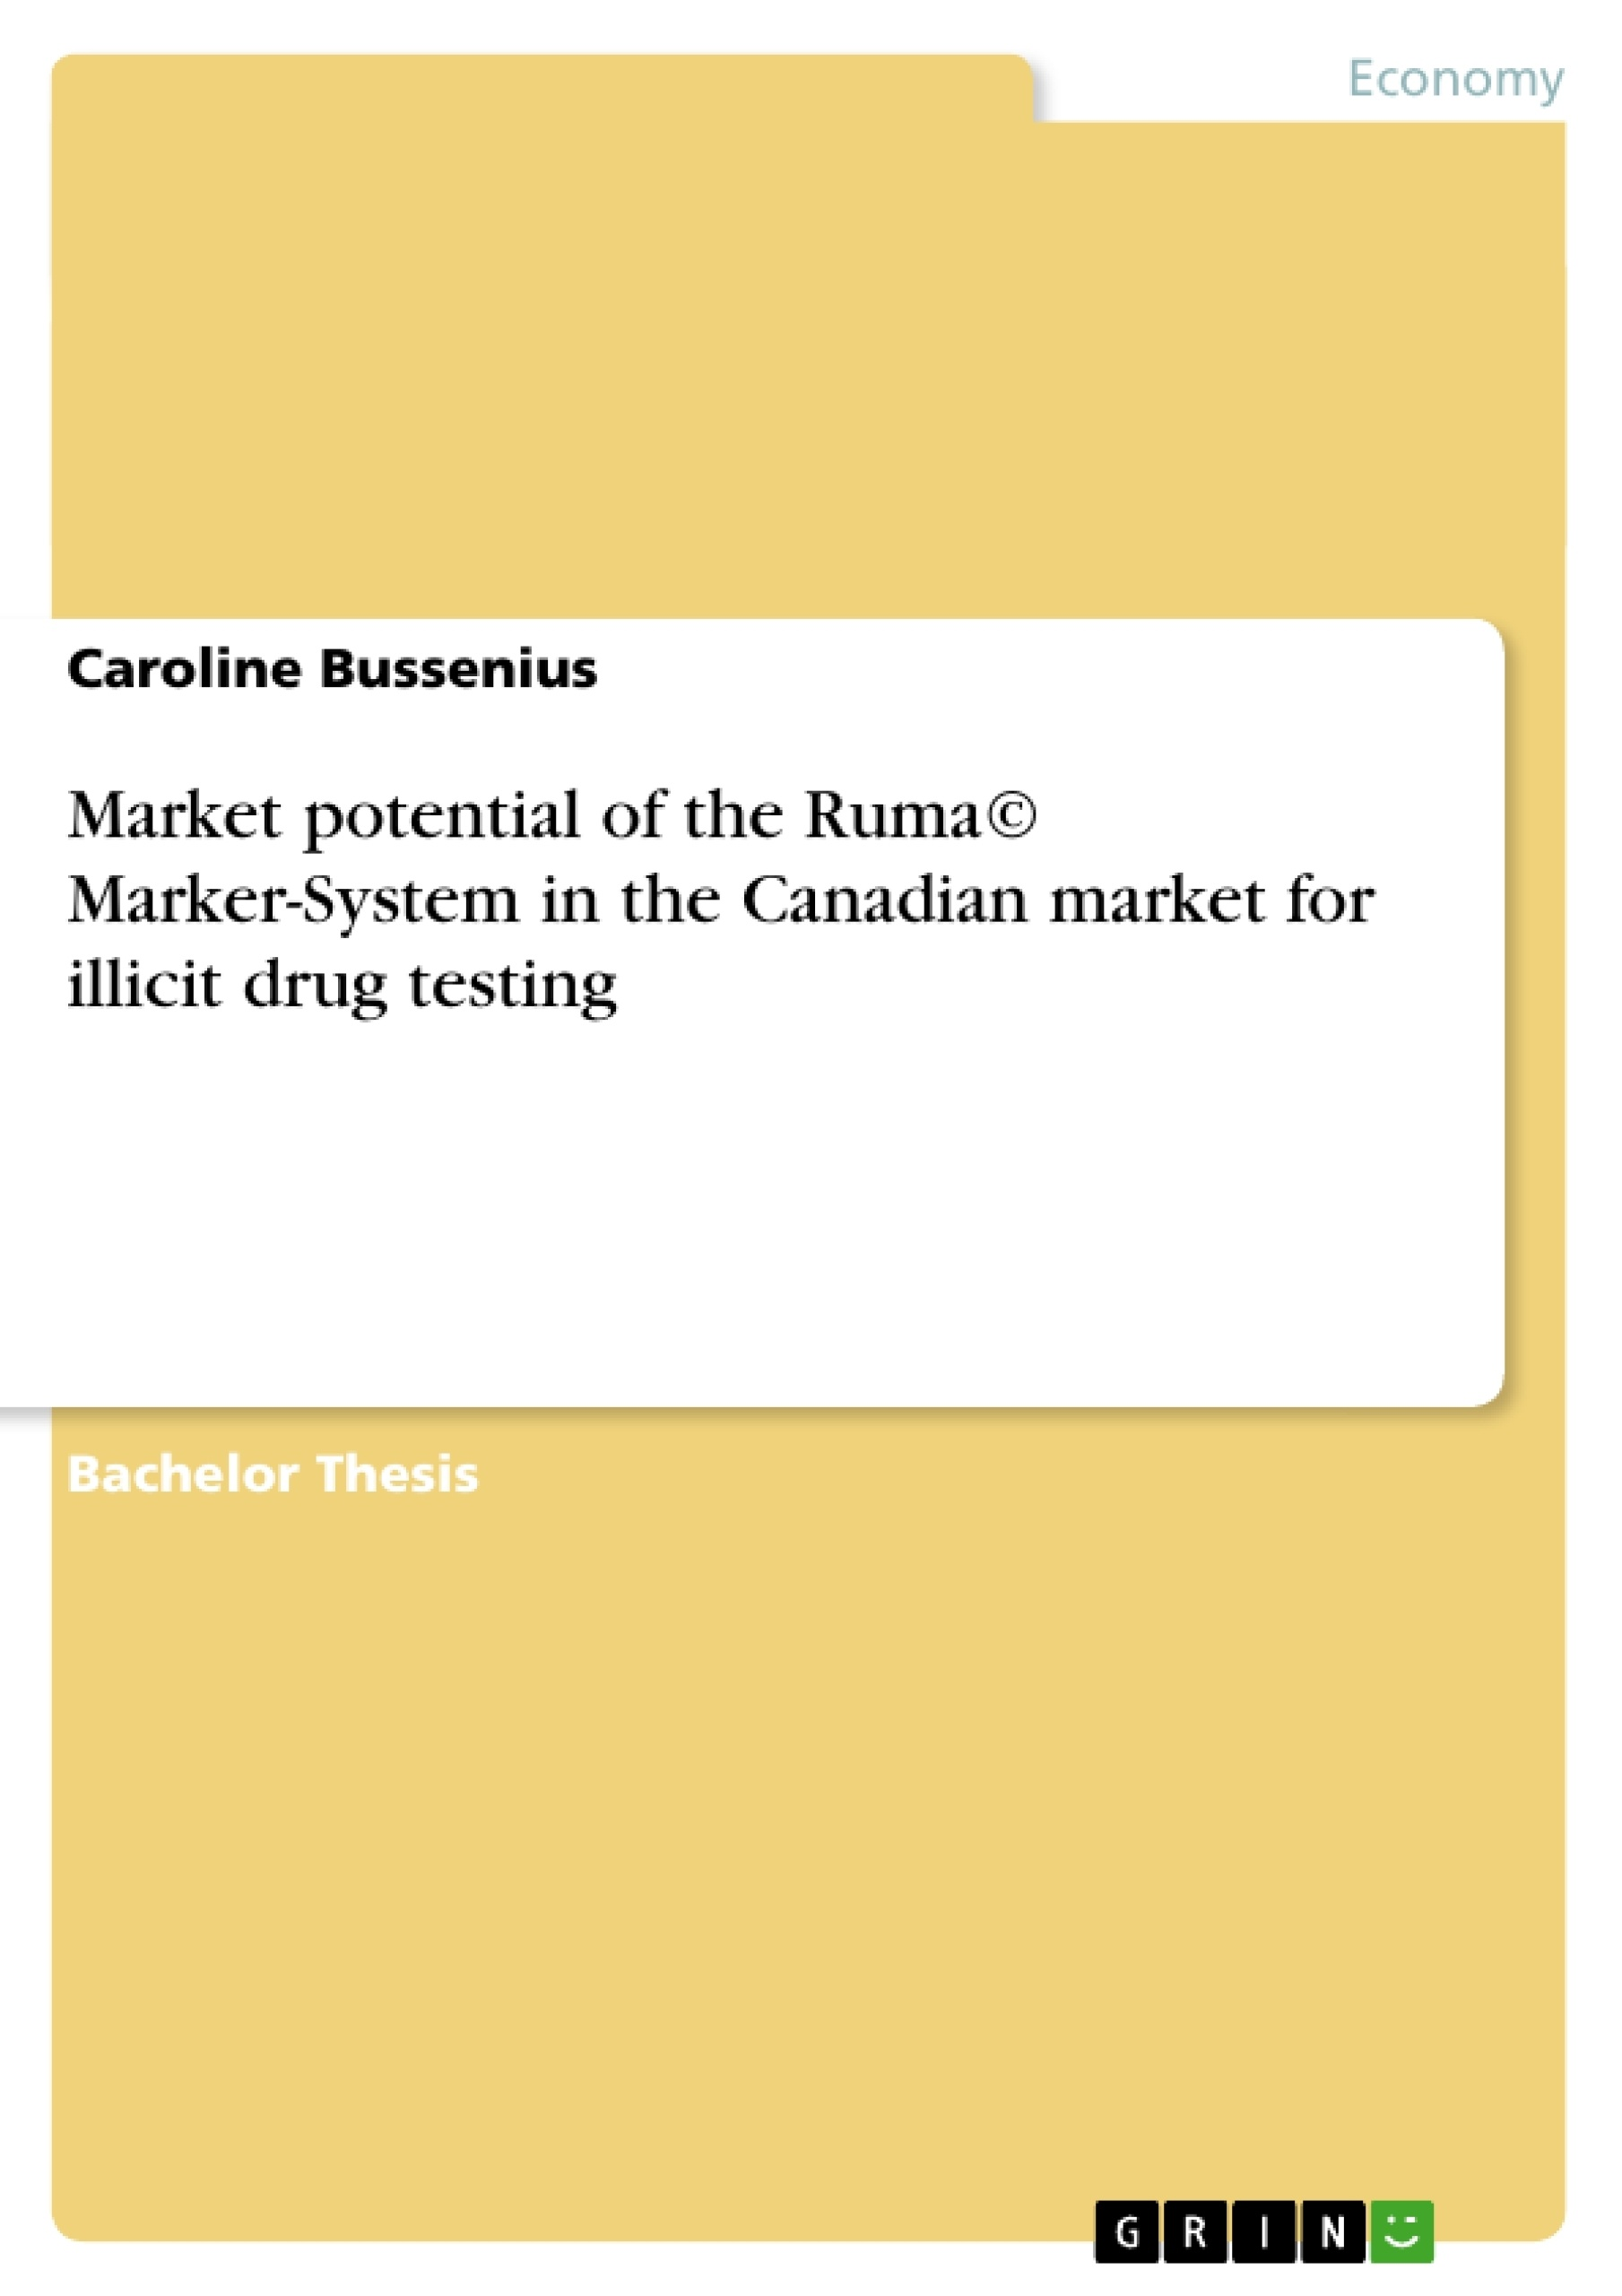 Title: Market potential of the Ruma© Marker-System in the Canadian market for illicit drug testing